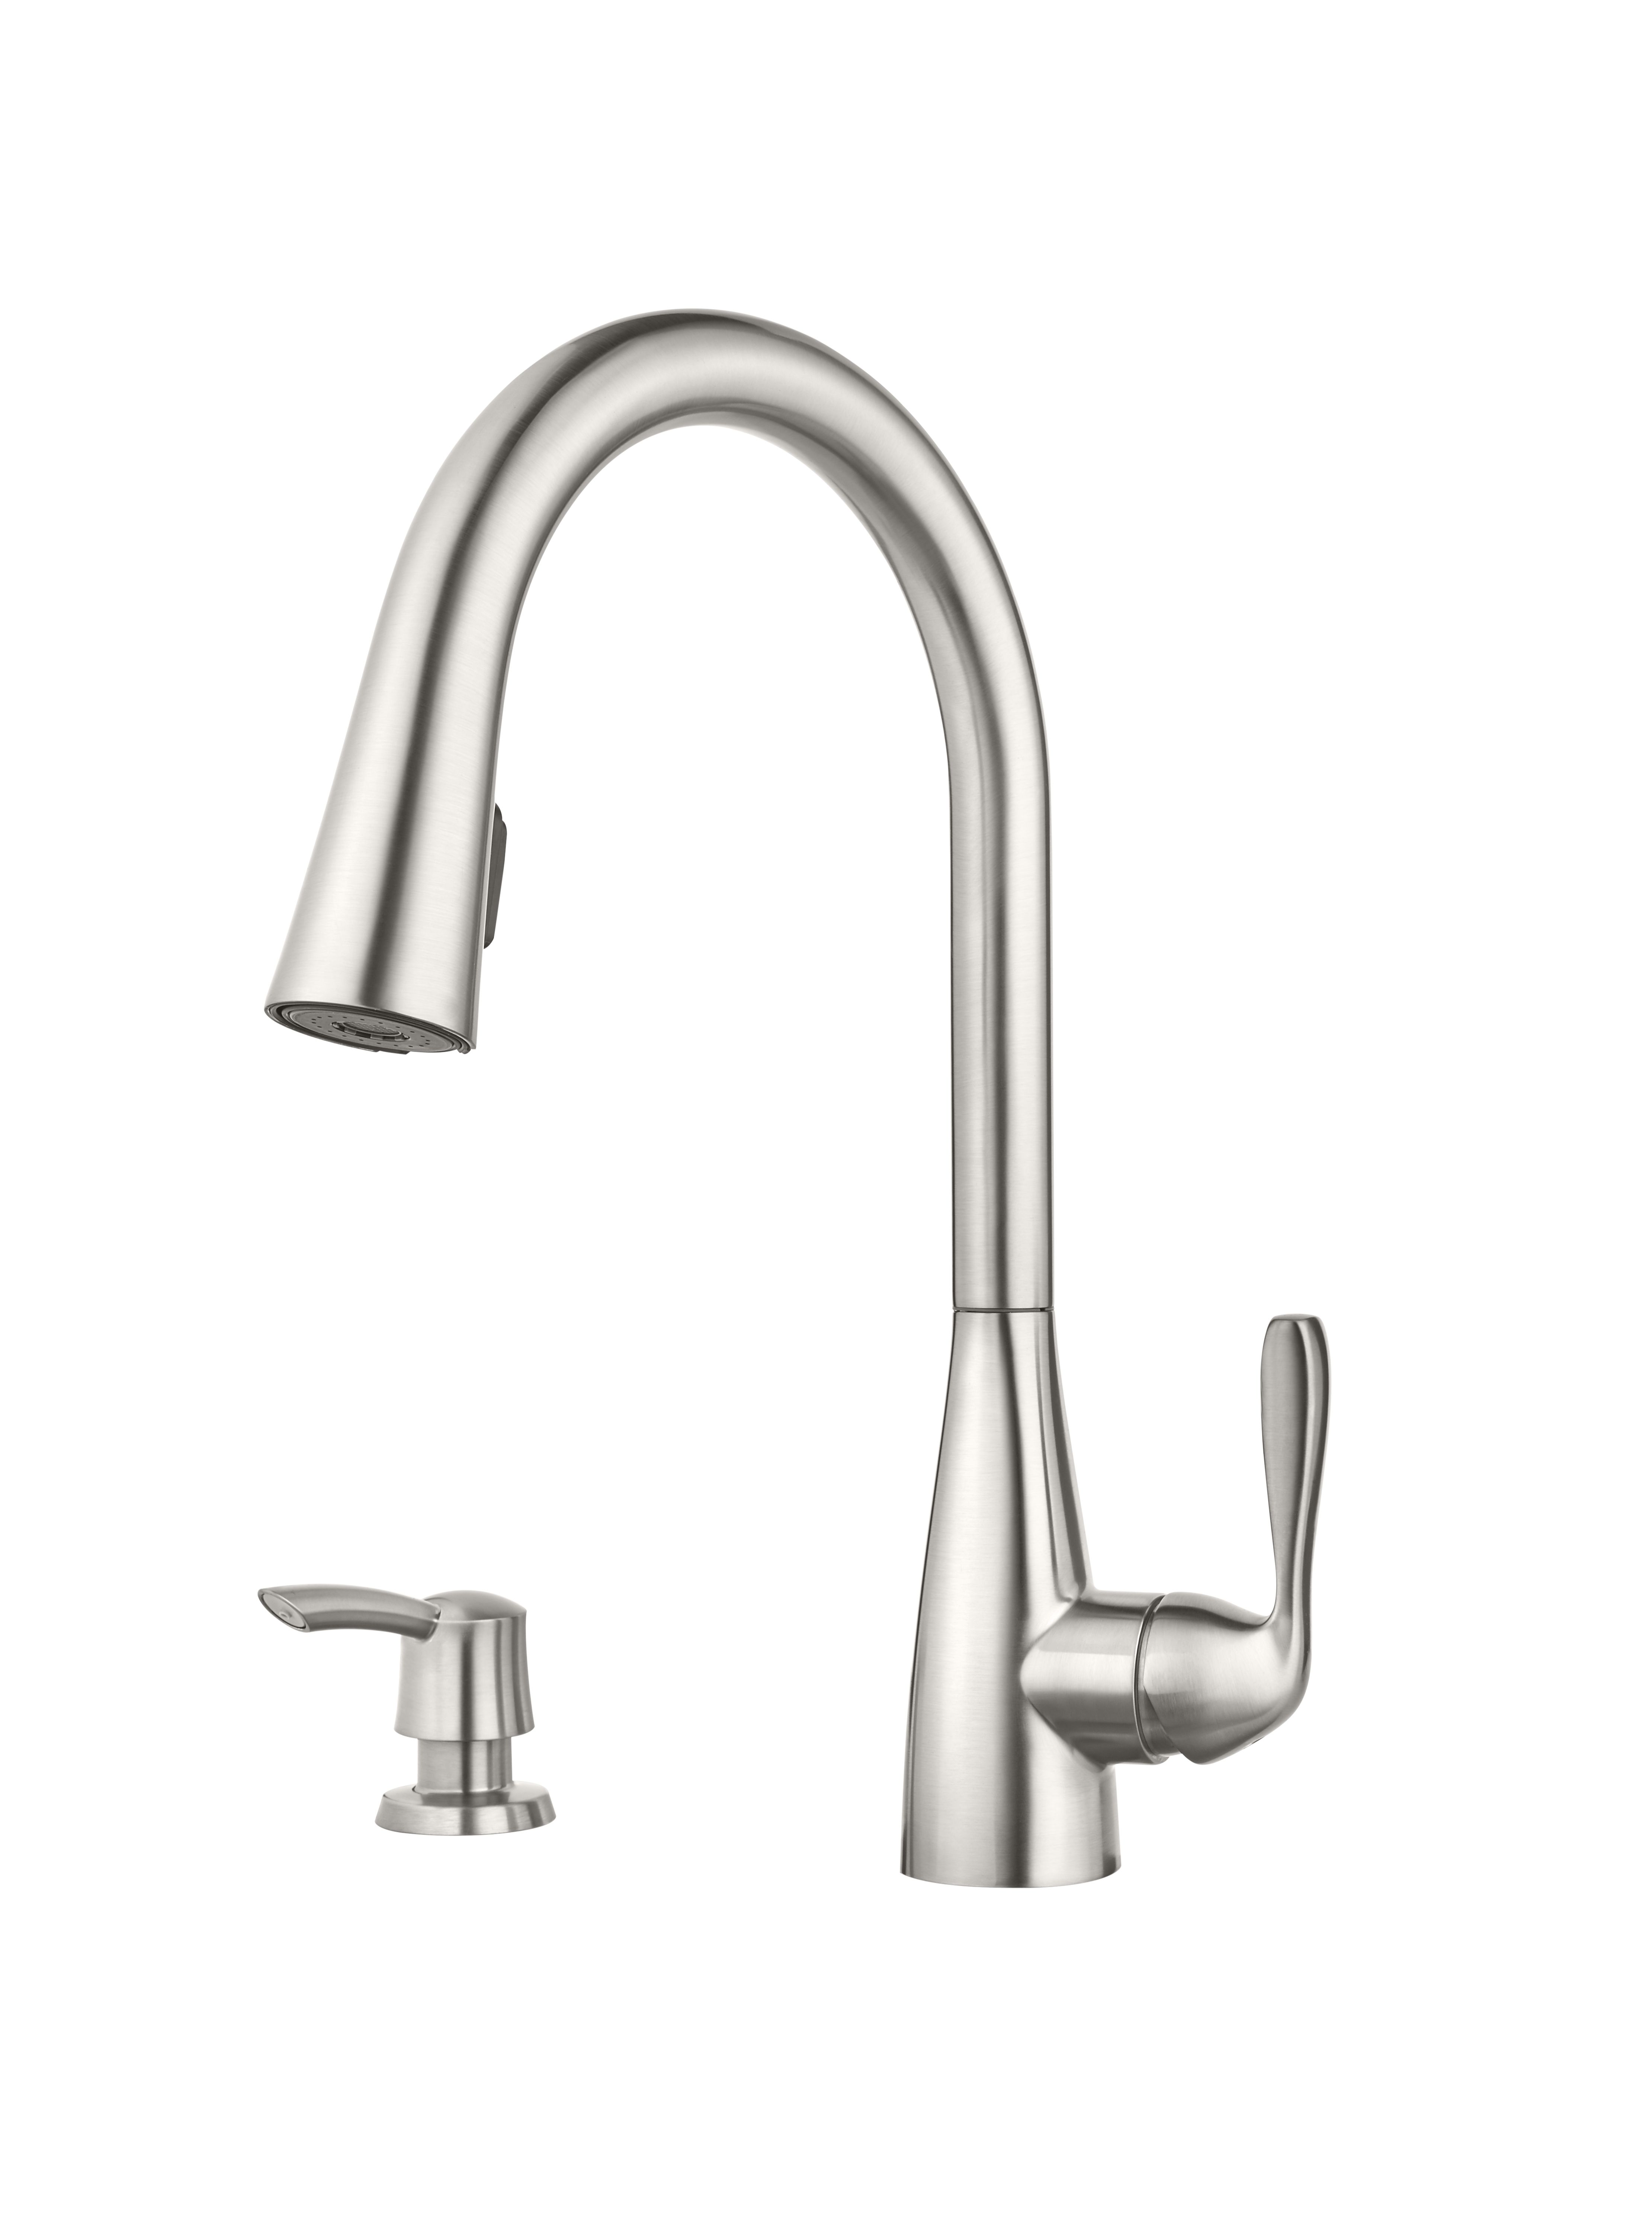 stainless steel kitchen faucets wall cabinets with glass doors kent ca lima single handle faucet your